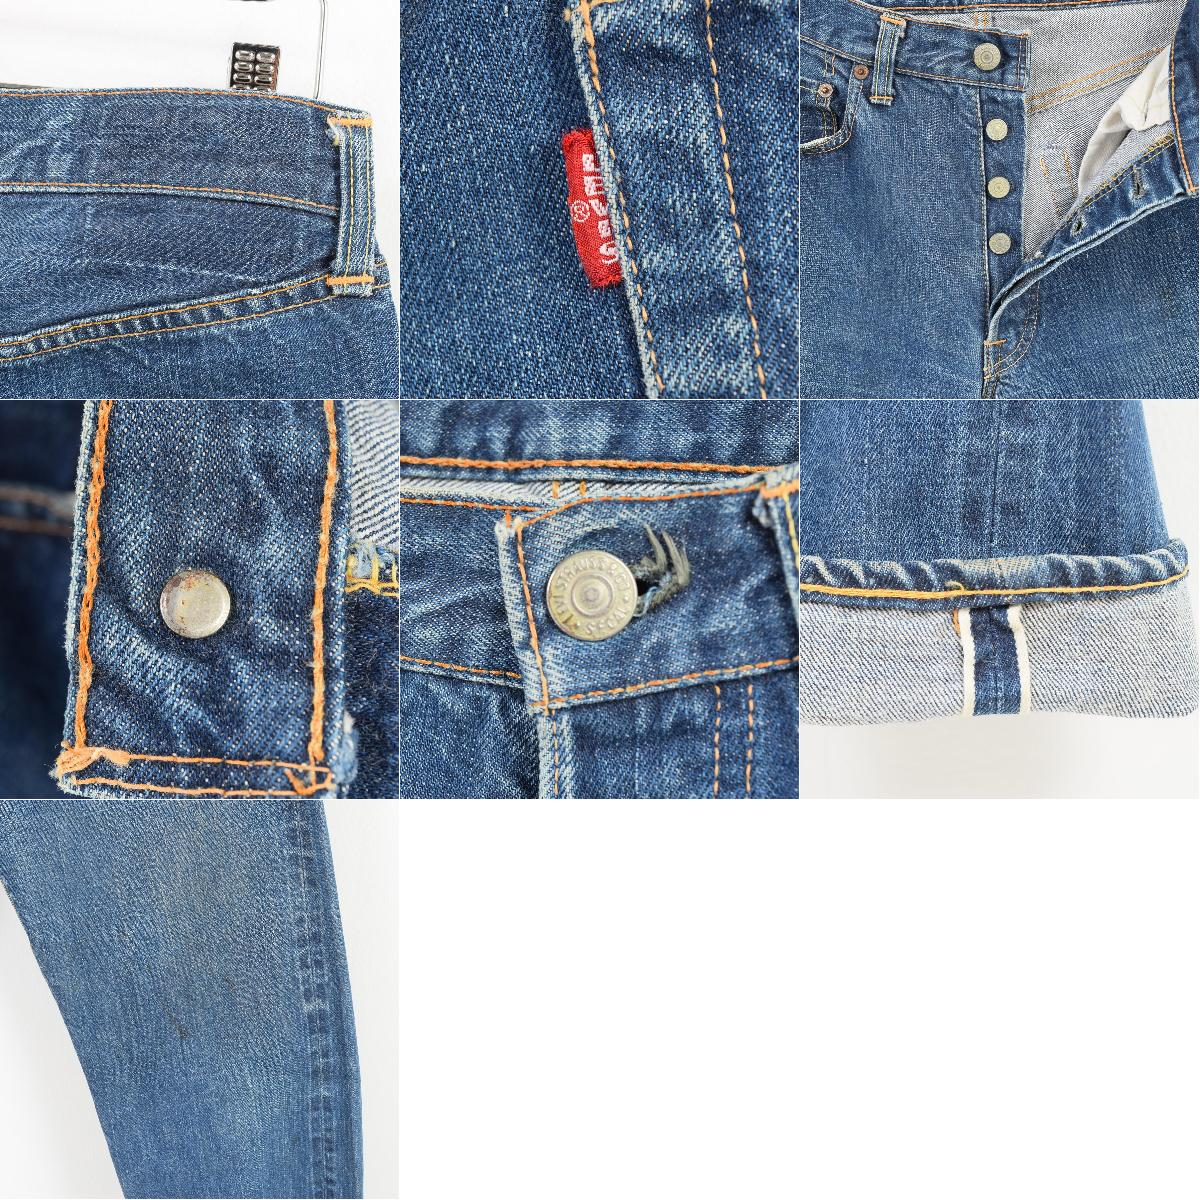 5b885d52263 ... Product made in 60s - Levis Levi's 501 BIG E jeans straight denim  underwear USA button